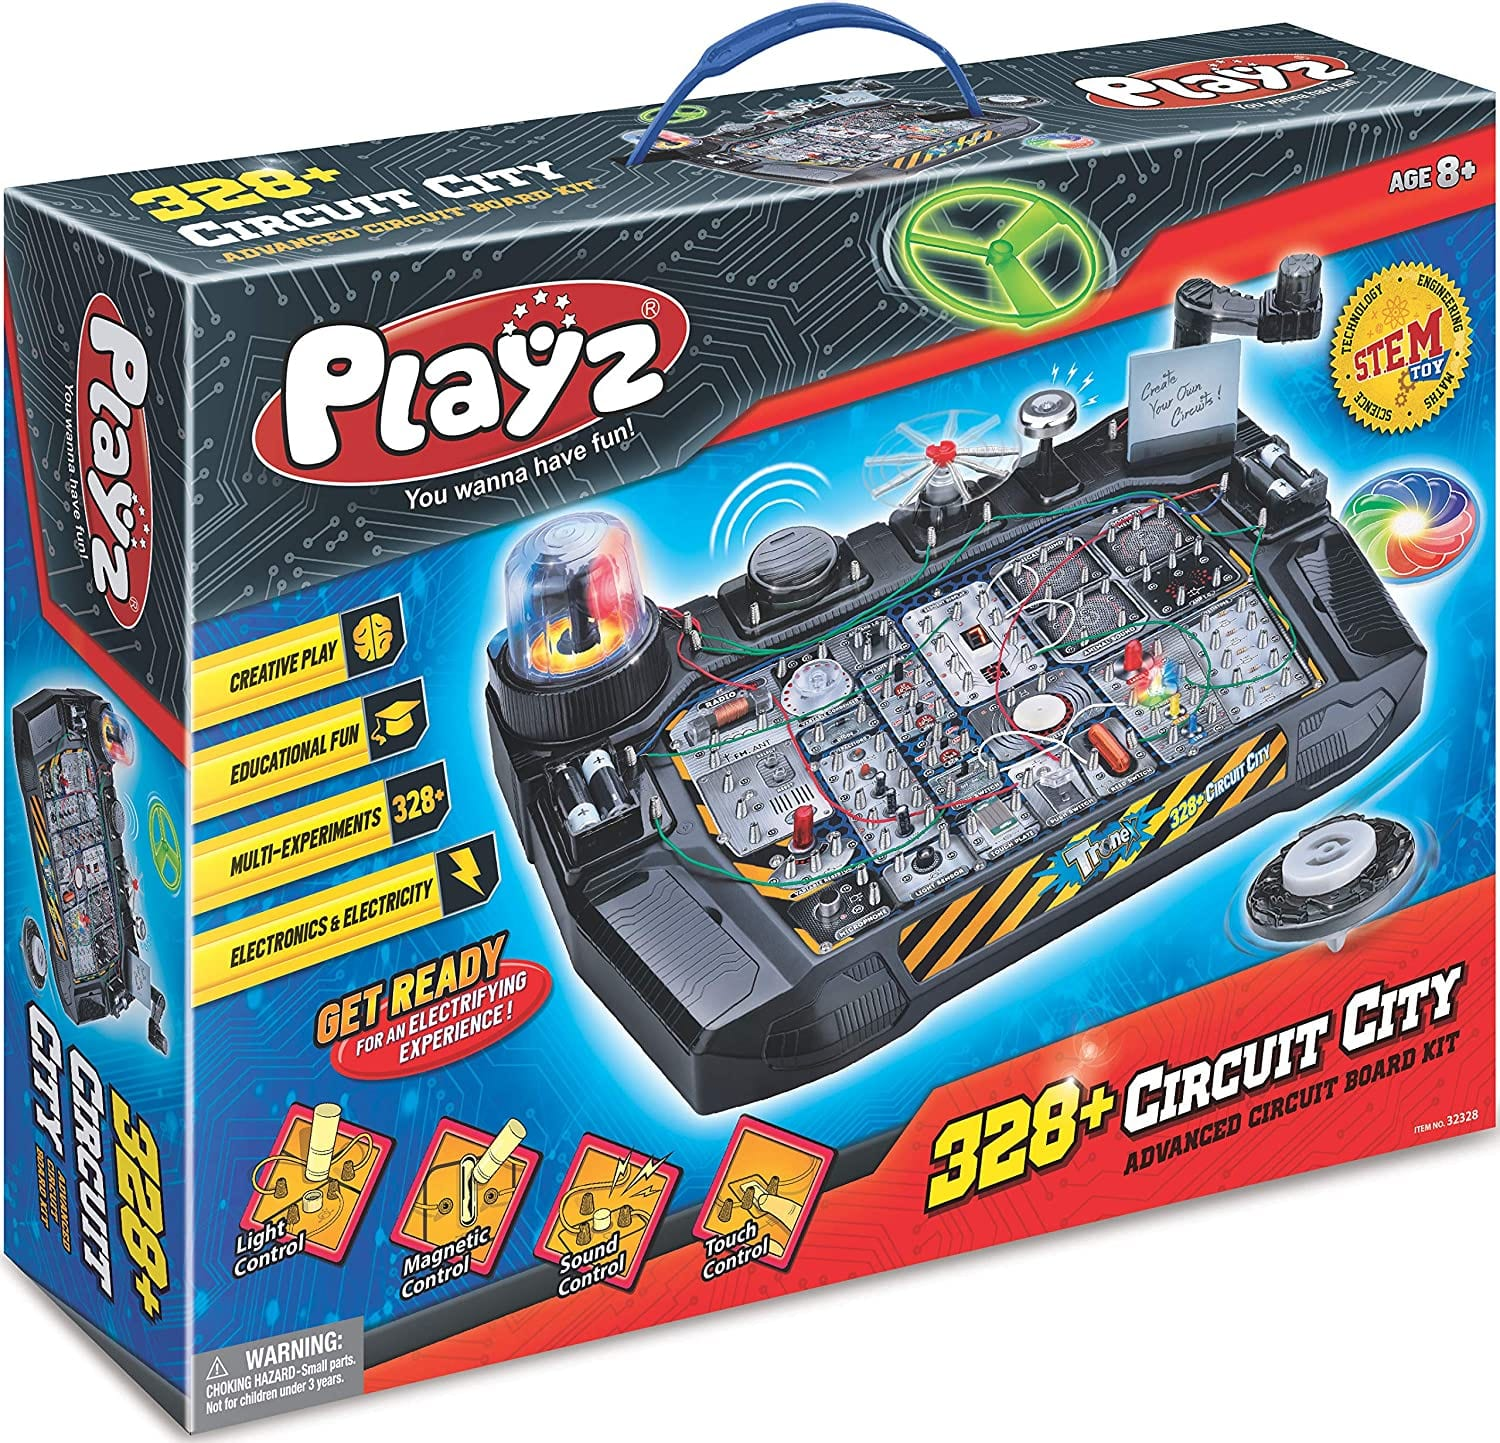 Playz Advanced Electronic Circuit Board Engineering Toy for Kids | 328+ Educational Experiments $37.86 including taxes (after clipping extra 50% off coupon)